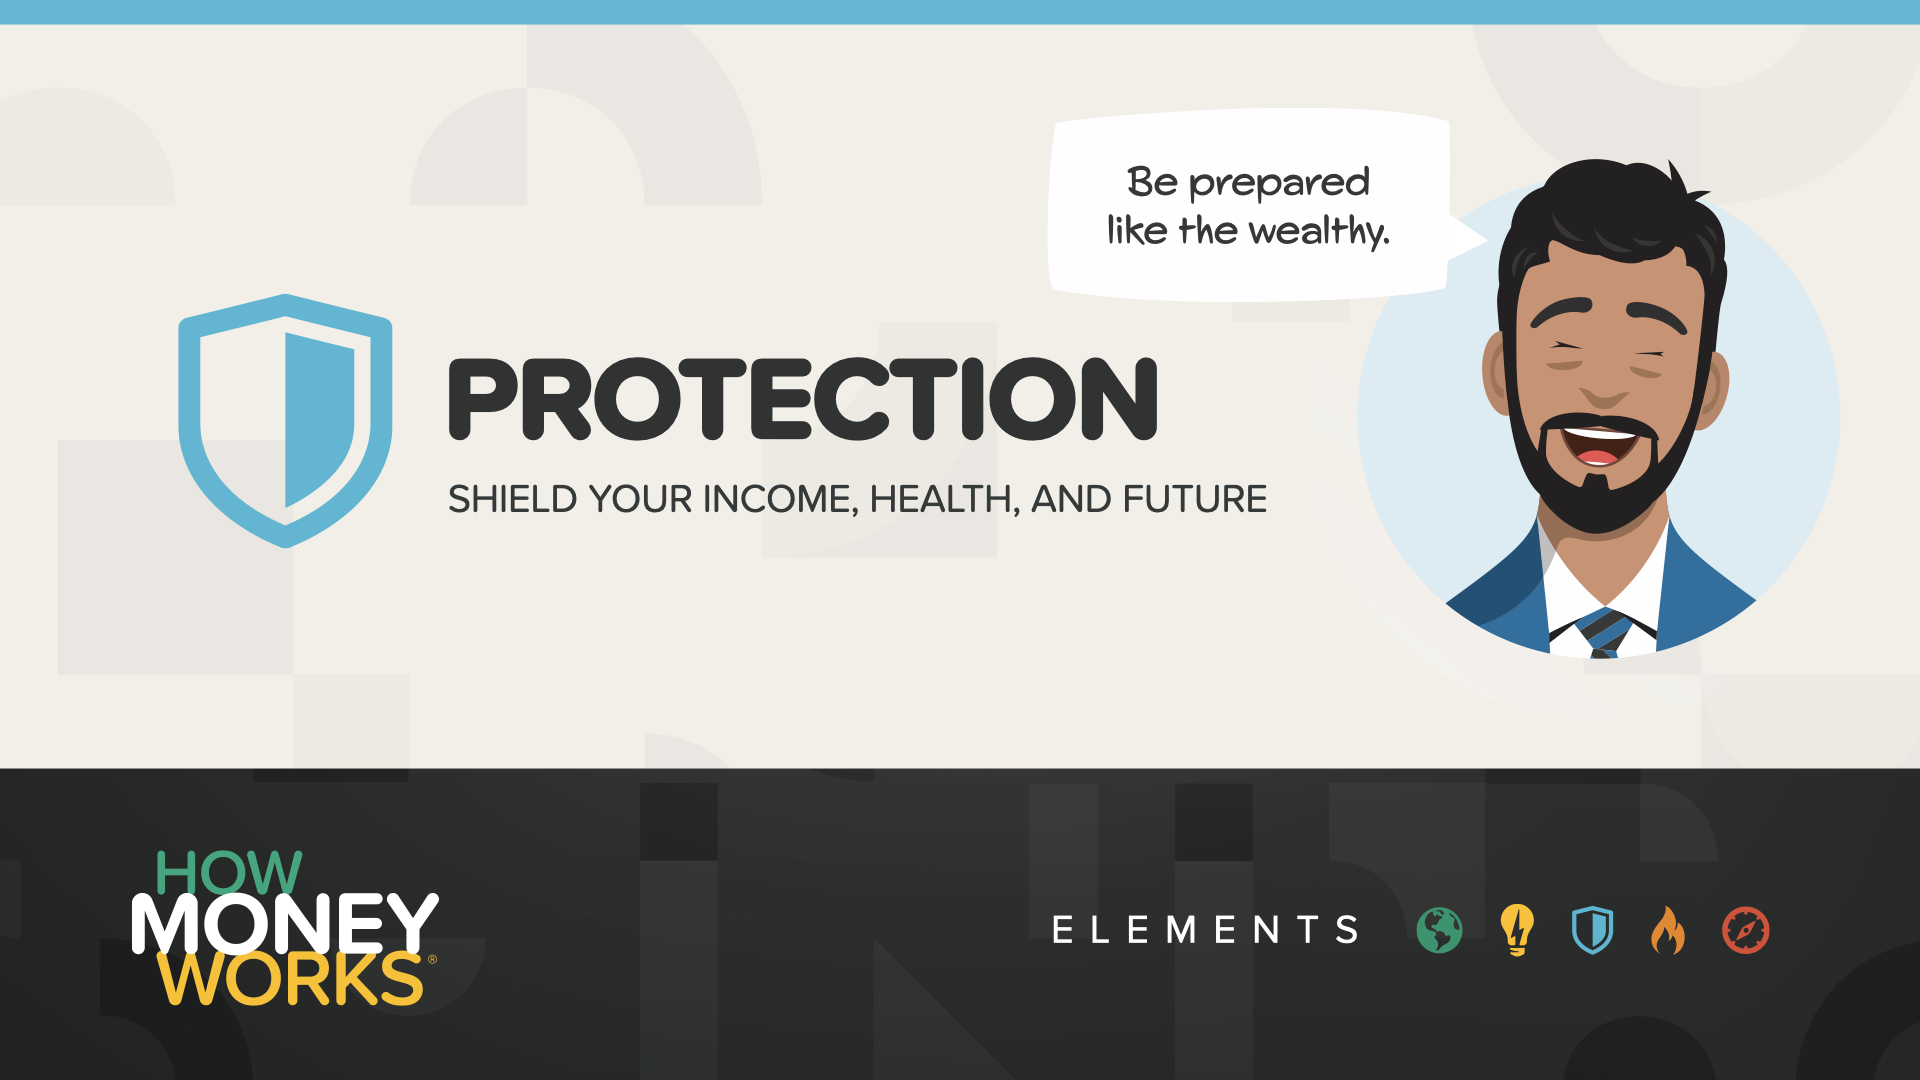 ELEMENTS - Protection